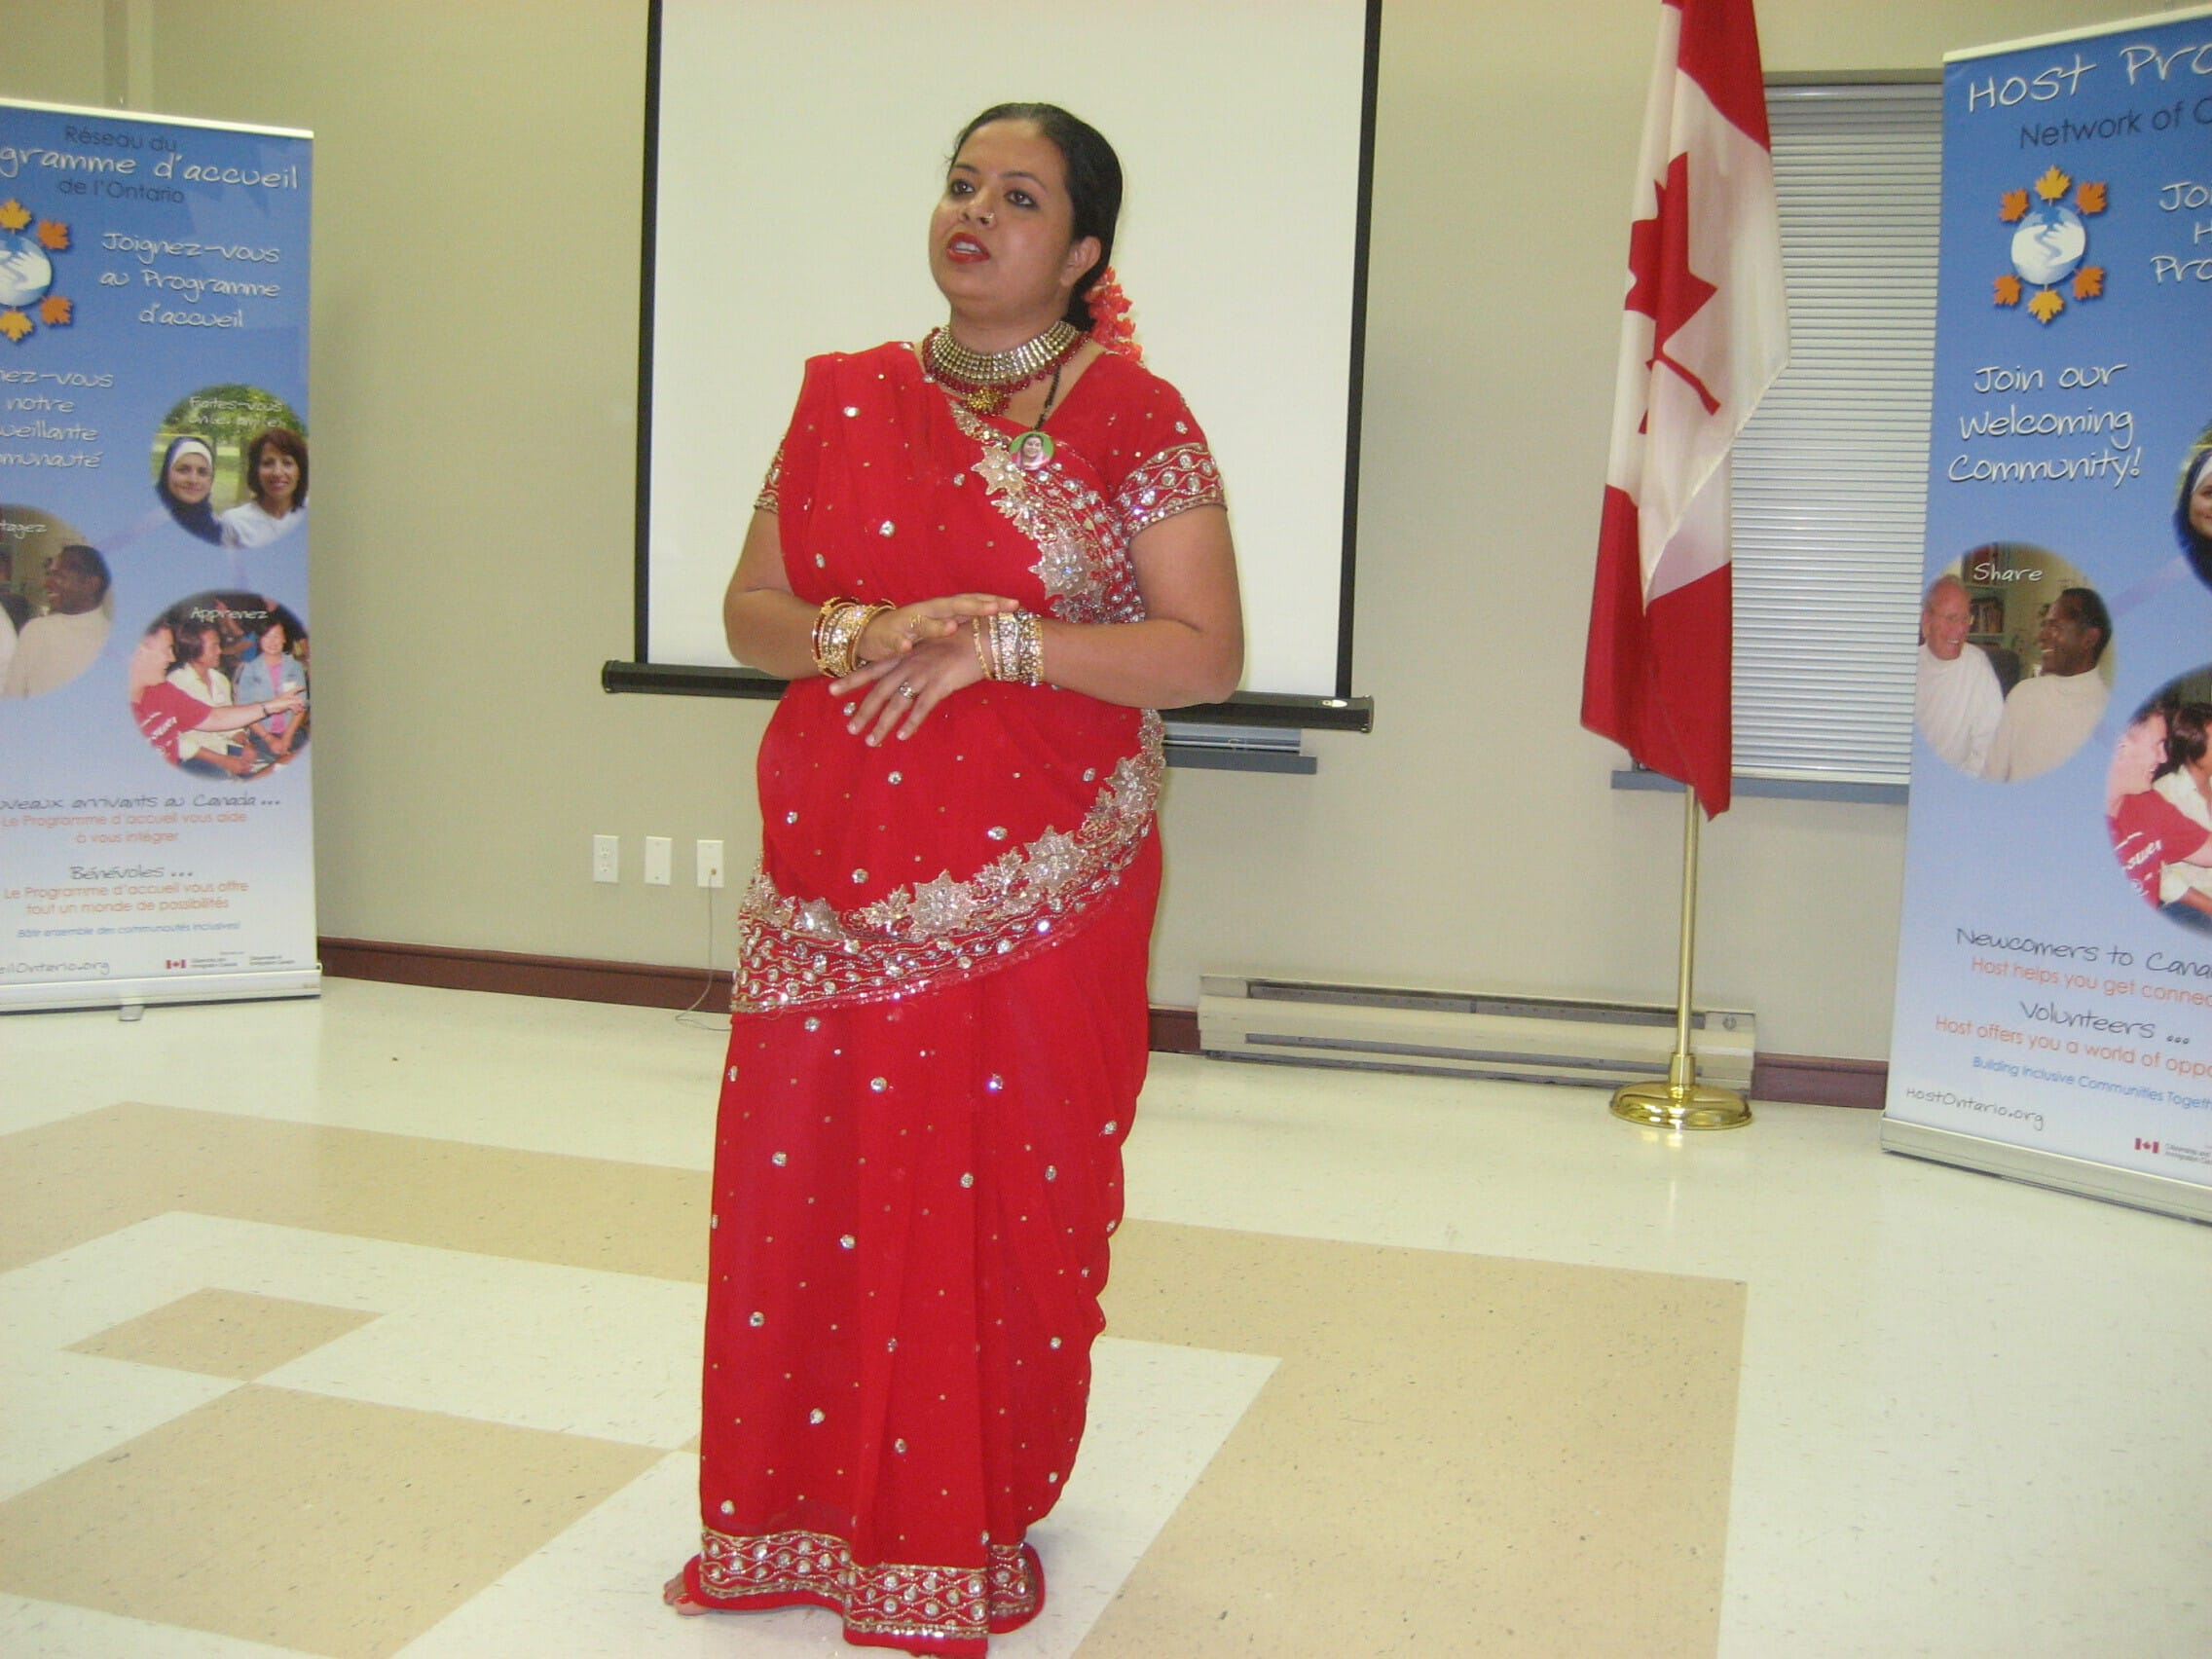 Anandita introducing Sahaja Yoga Meditation and her Art to representatives from many countries of the World, arrived to Canada/ Halton as immigranta - in Oakville, Dec 2